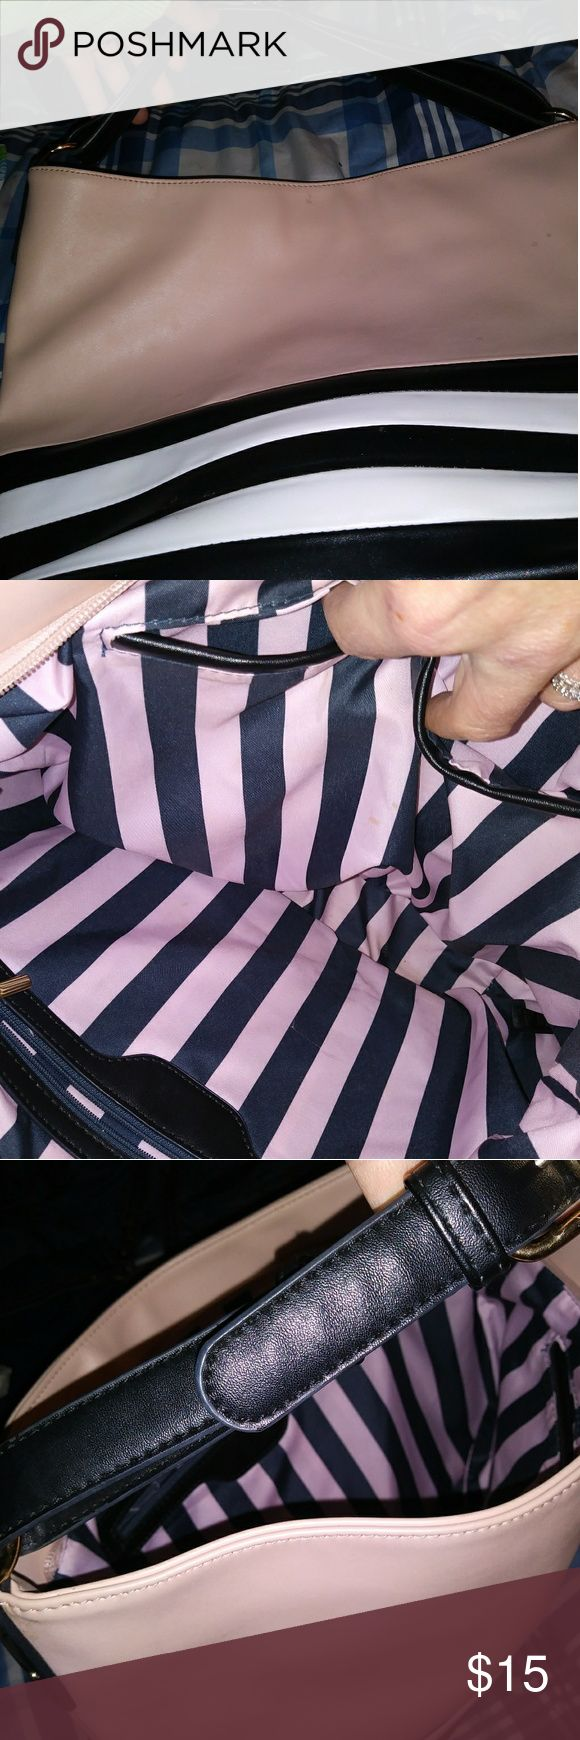 👛SALE! NWOT Pink,Blk,White Adjstbl Strap Purse 👛 SALE! NWOT flawless & super cute light pink w/black and white stripes at the bottom and in the fabric lining. One side has a zipper pocket & the strap is adgustable & the entire purse zips shut. The interior has 2 open pockets for make-up etc and zipper pocket. Super cute purse and a perfect size. Can be carried or worn on the shoulder. Gorgeous bag and pristine condition! Never worn once and kept in plastic. Bags Shoulder Bags